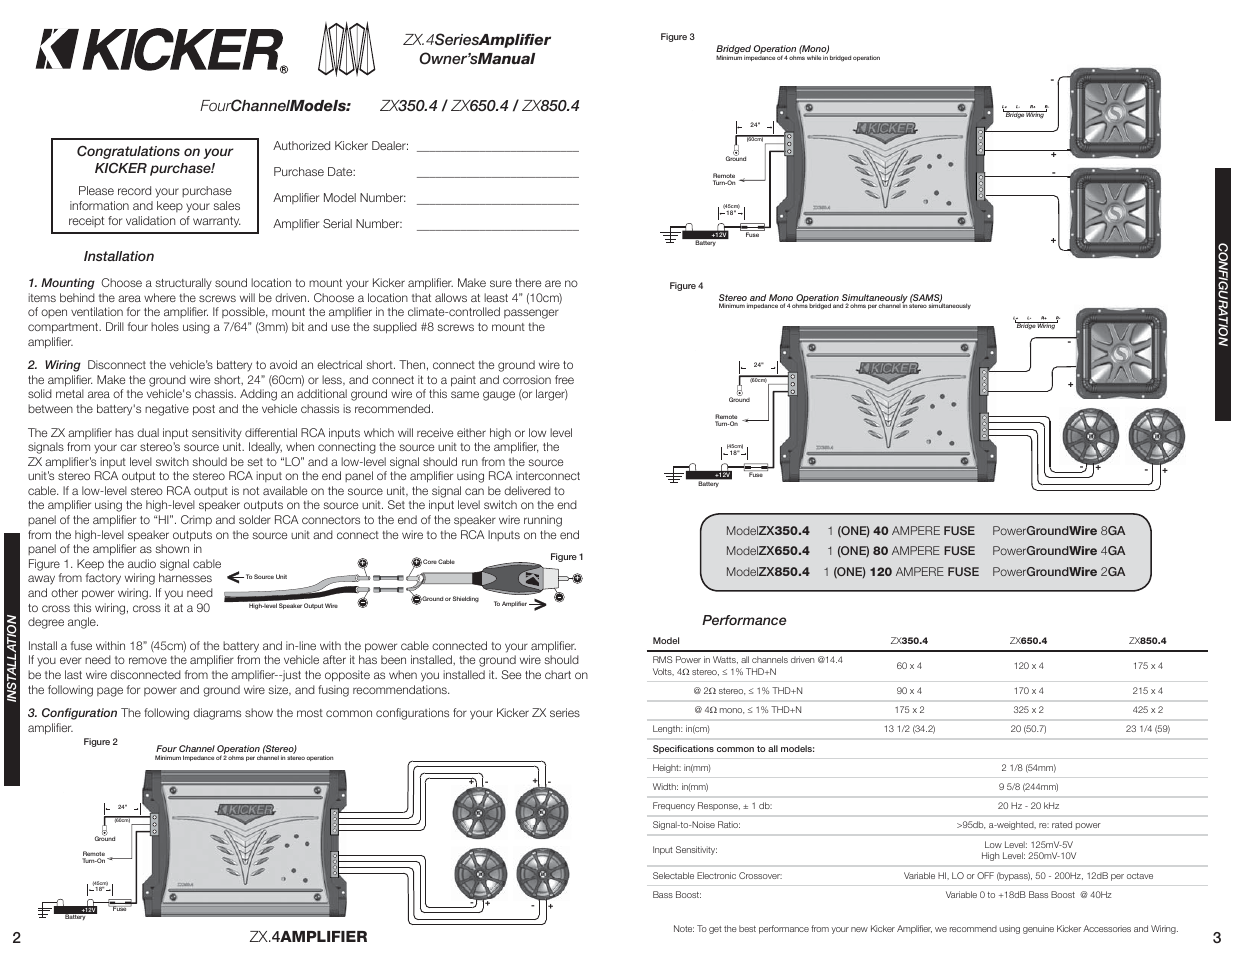 2zx 4amplifier kicker zx650 4 user manual page 2 3 4amplifier kicker zx650 4 user manual page 2 3